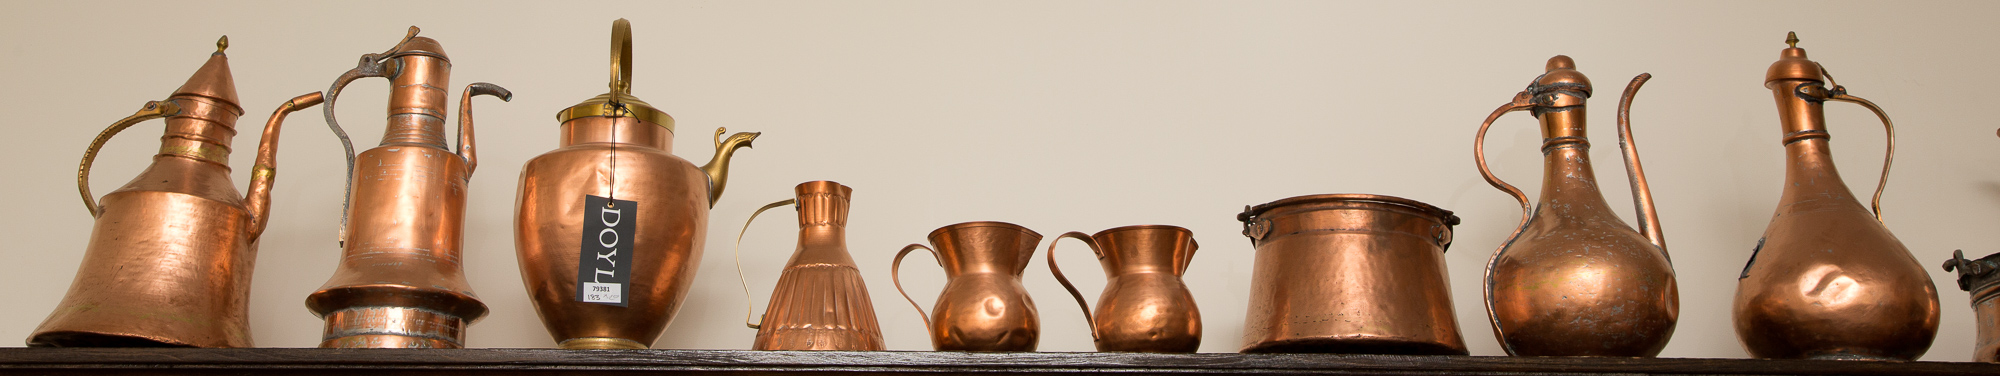 Lot image - Miscellaneous Group of Copper Kitchenware